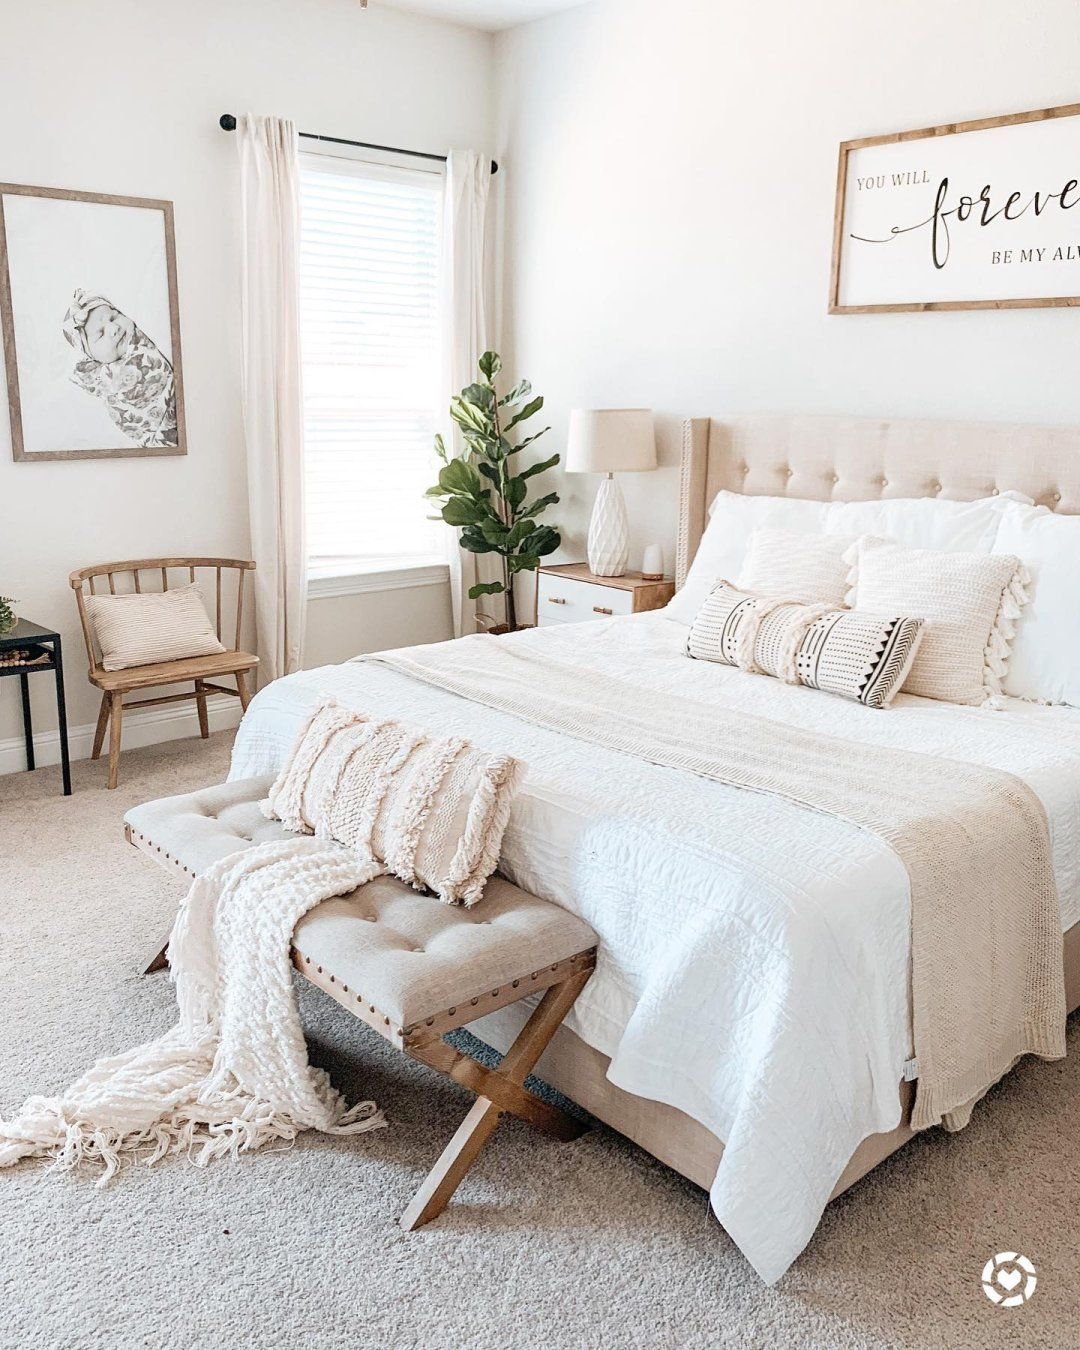 This neutral bedroom design is so simple and gorgeous! Thanks for